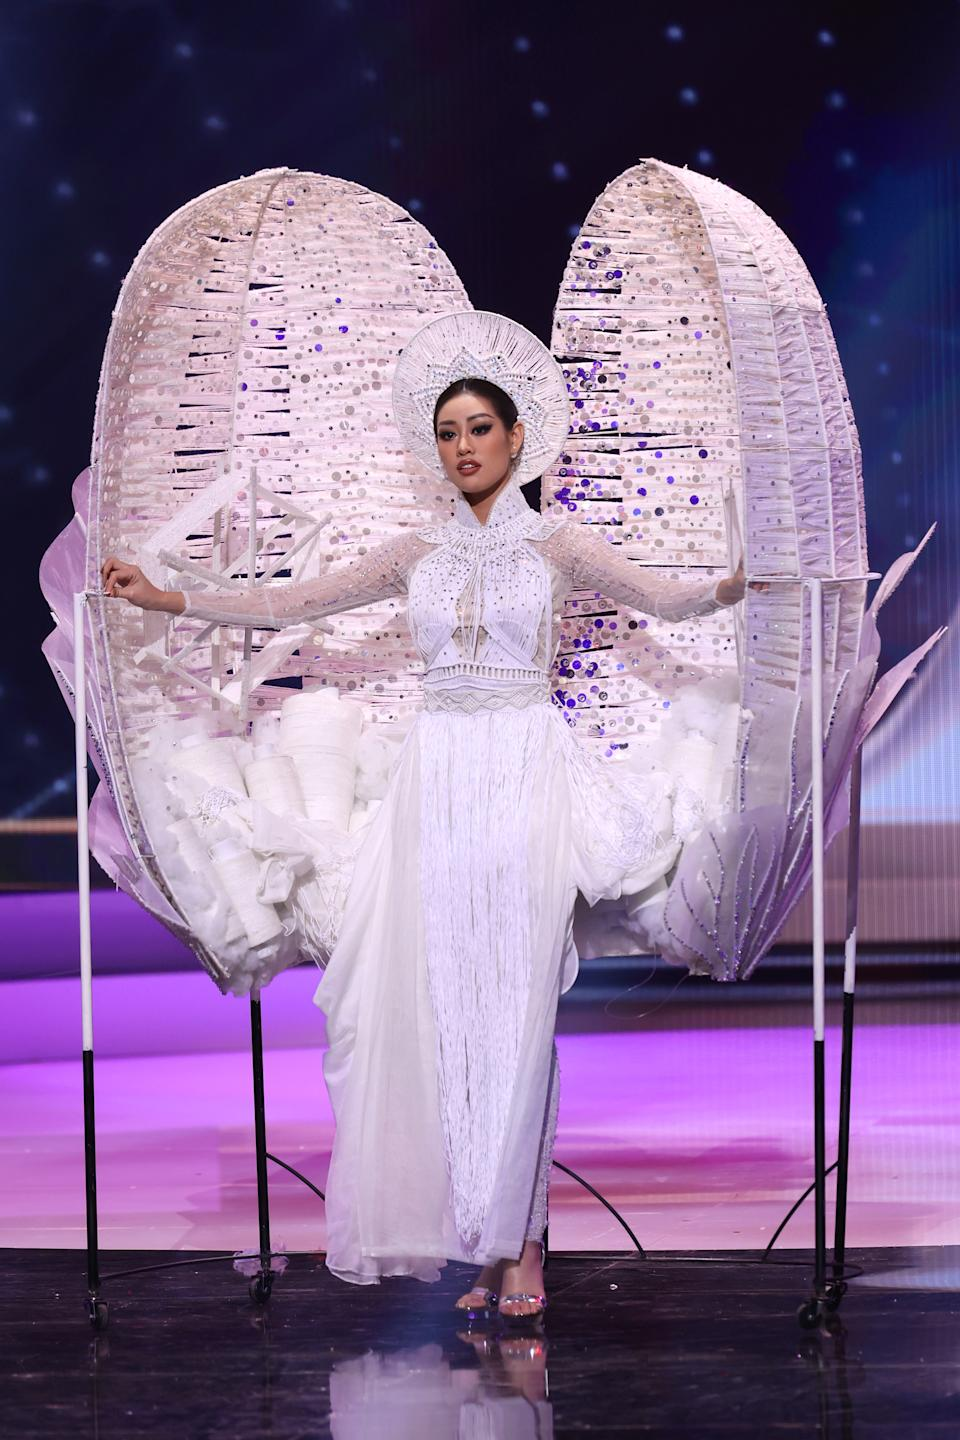 <p>Miss Universe Vietnam Nguyen Tran Khanh Van appears onstage at the Miss Universe 2021 - National Costume Show at Seminole Hard Rock Hotel & Casino on May 13, 2021 in Hollywood, Florida. (Photo by Rodrigo Varela/Getty Images)</p>